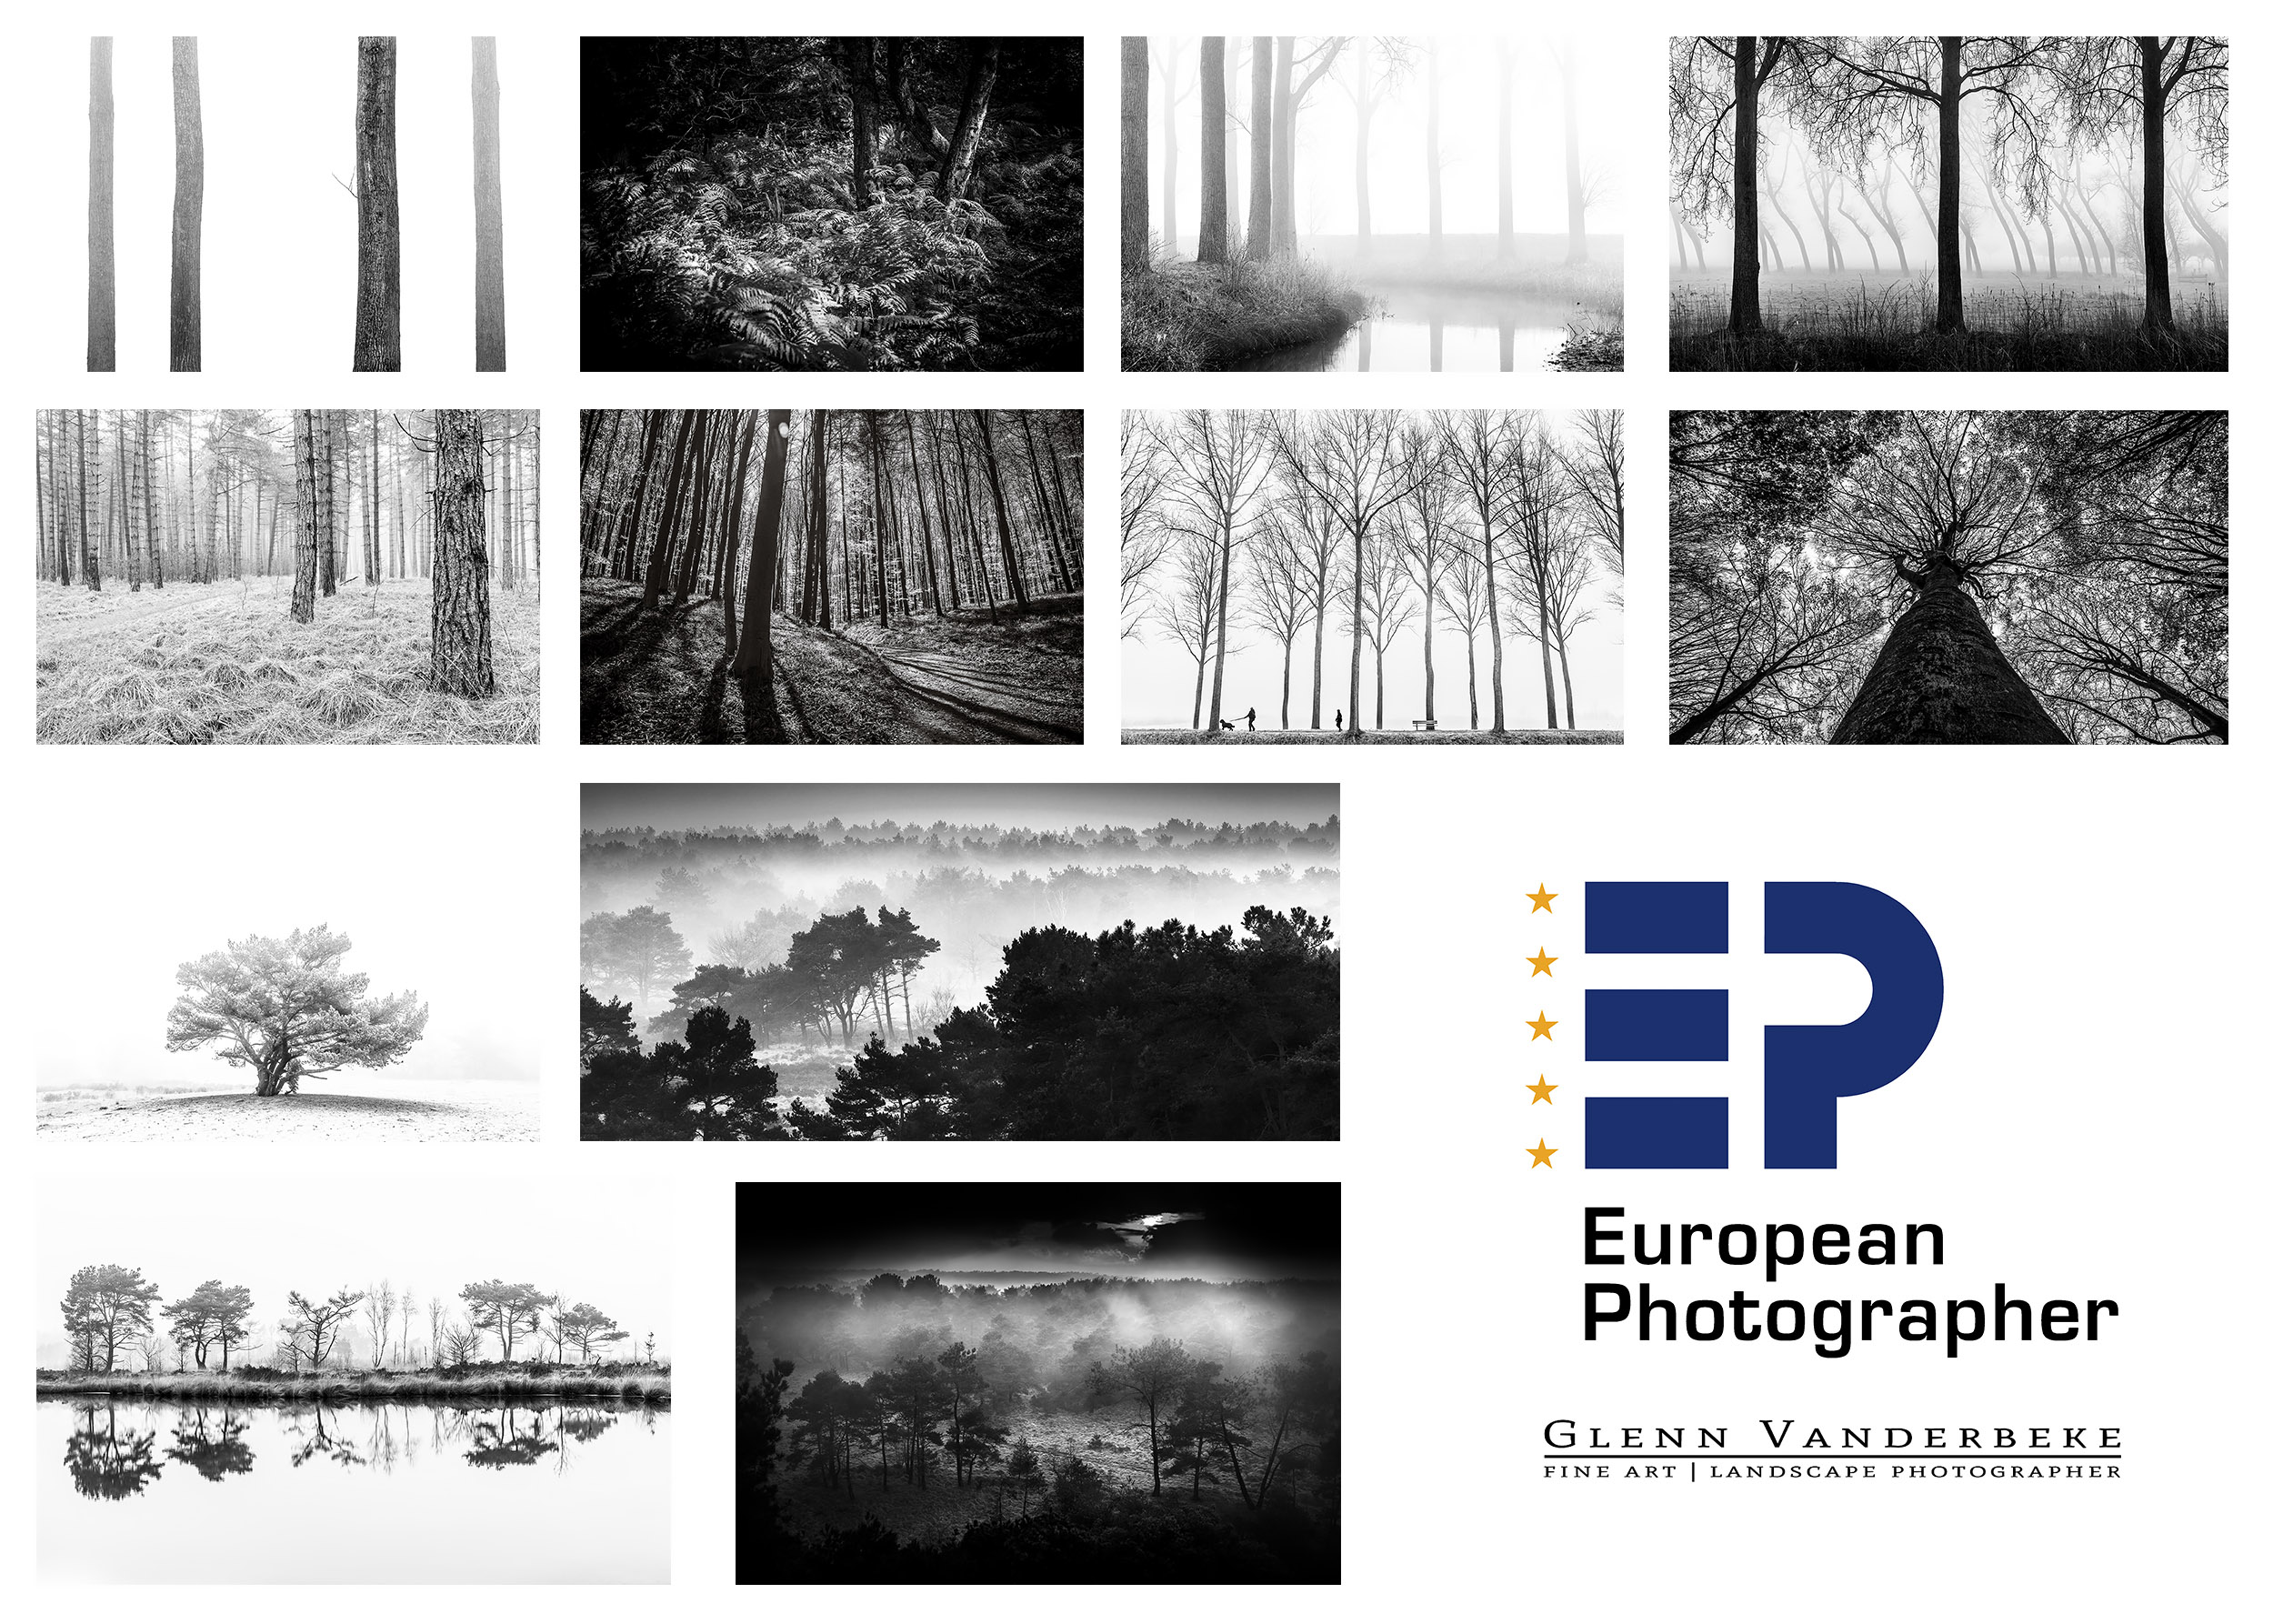 glenn vanderbeke, fotografie, fine art photography, groot formaat prints, landschapsfotograaf, european photographer, federation of european photographers